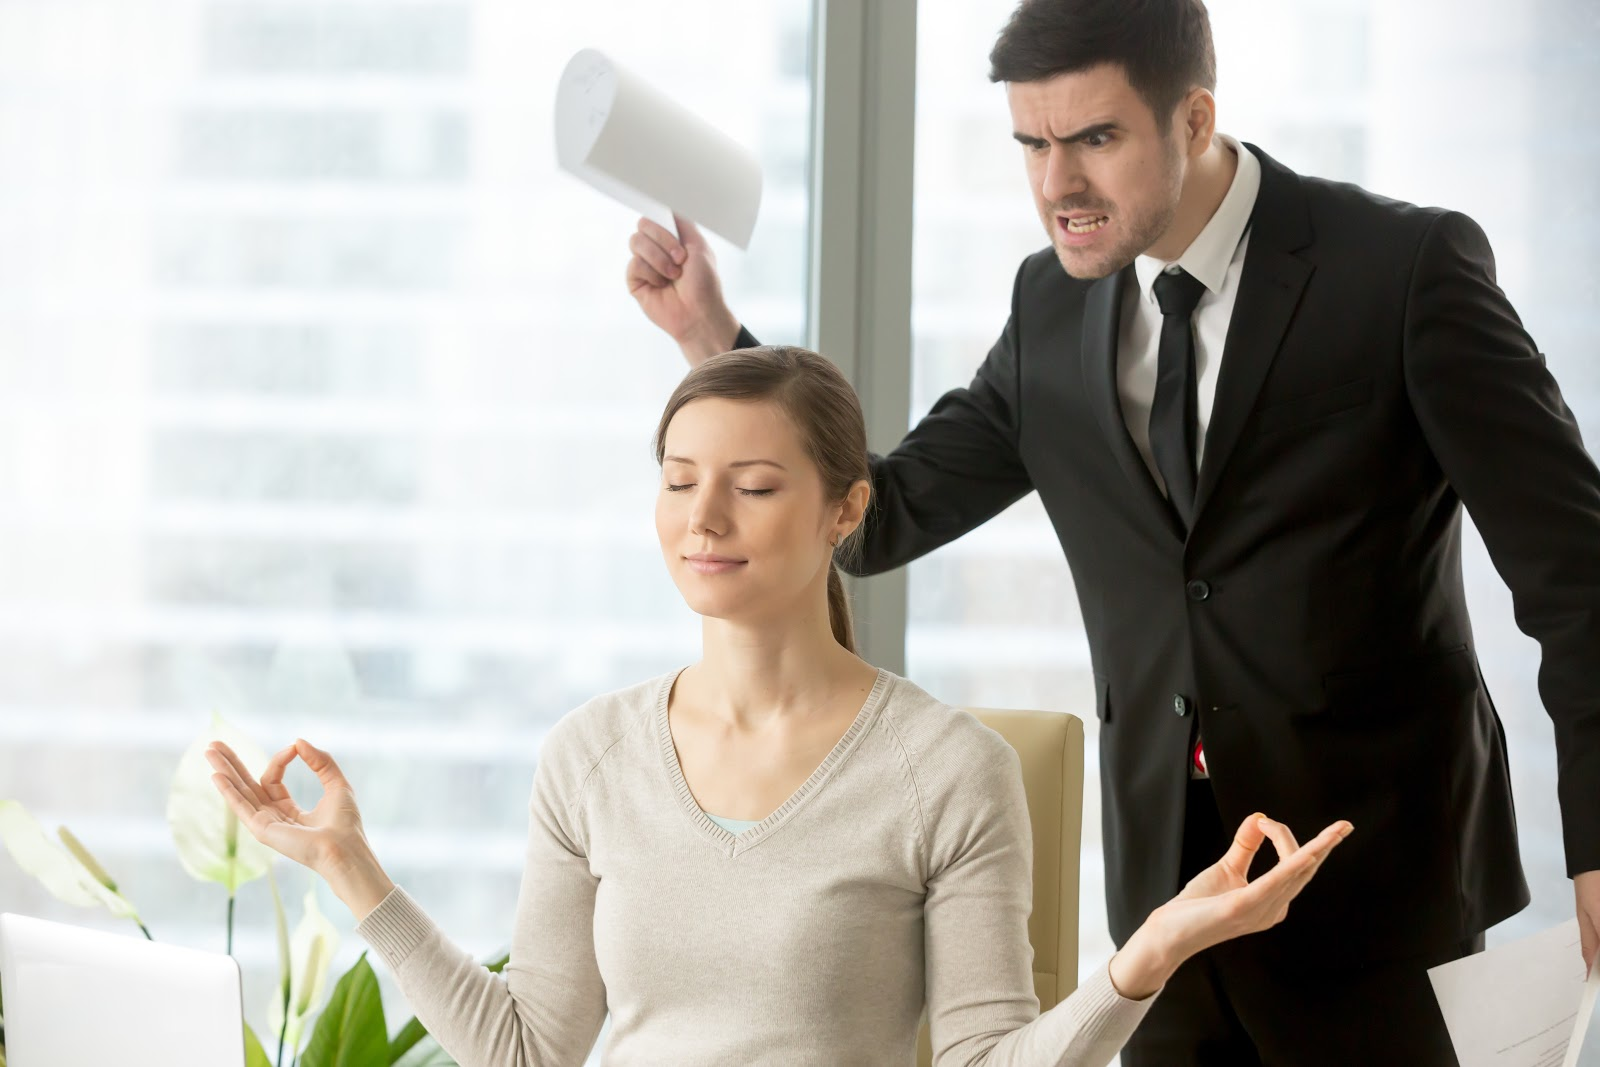 An angry man standing over a woman meditating